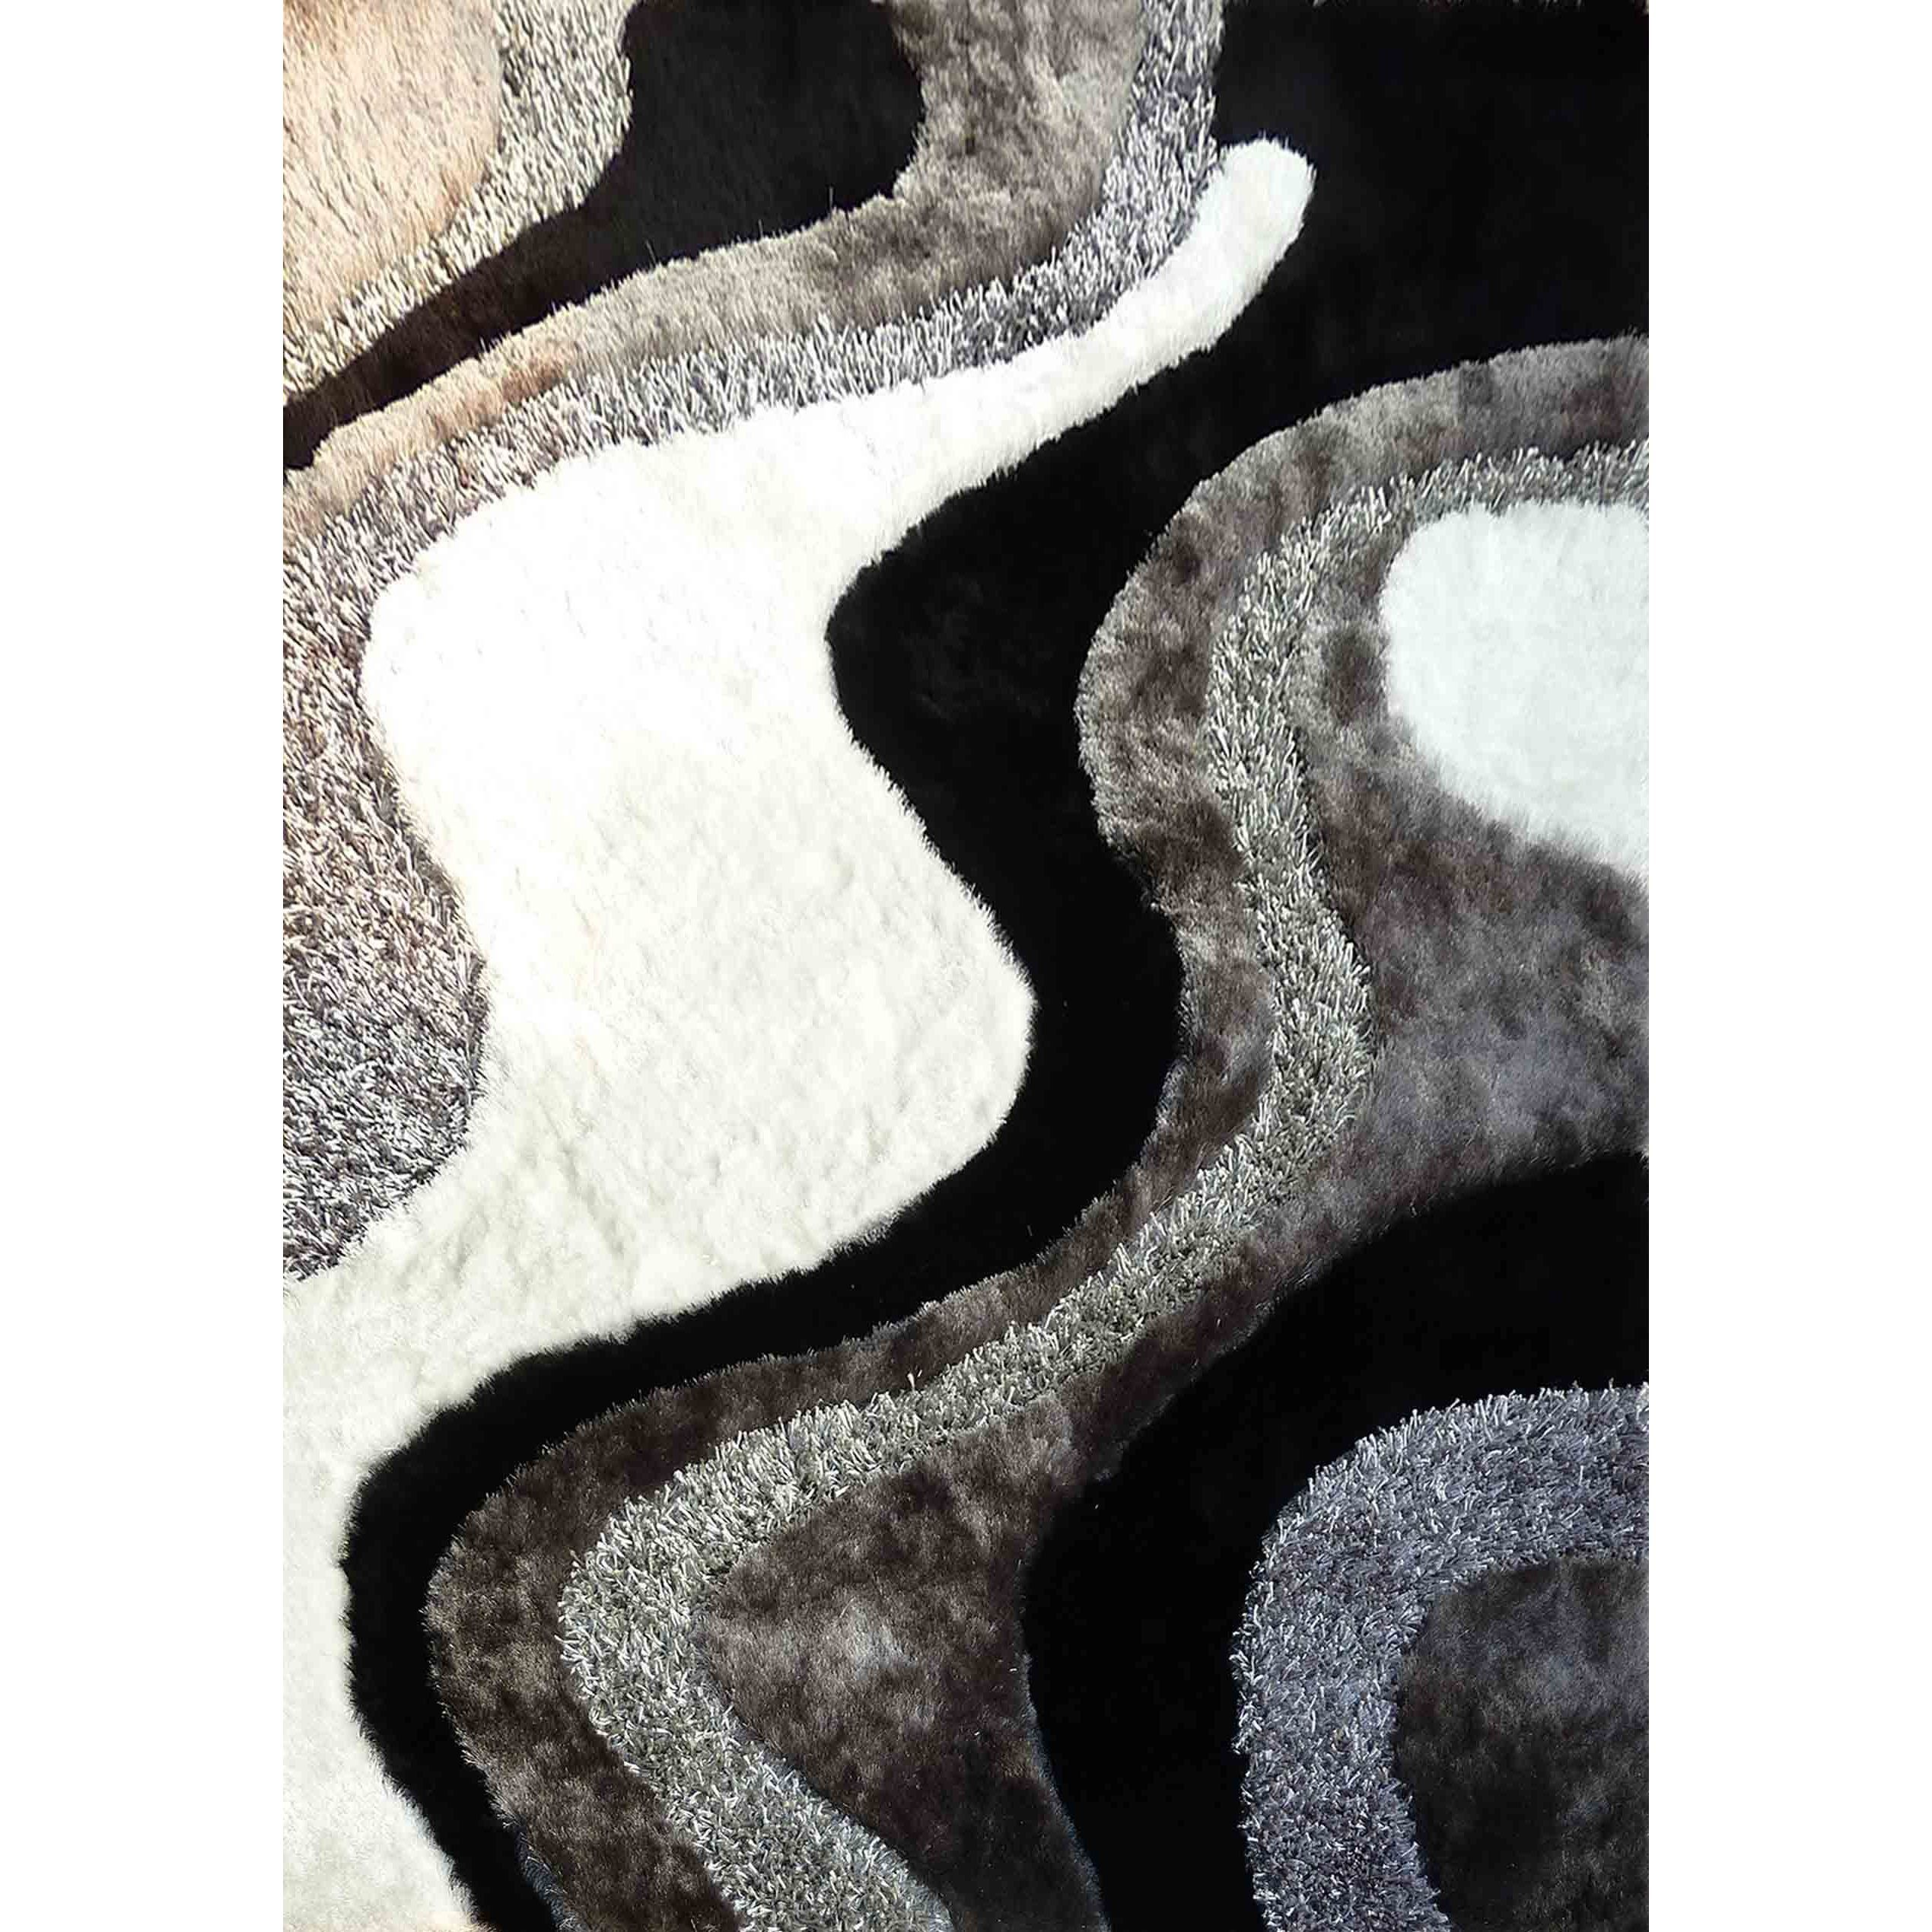 Abstract Art Ocean Wave Design White Silver Grey Black